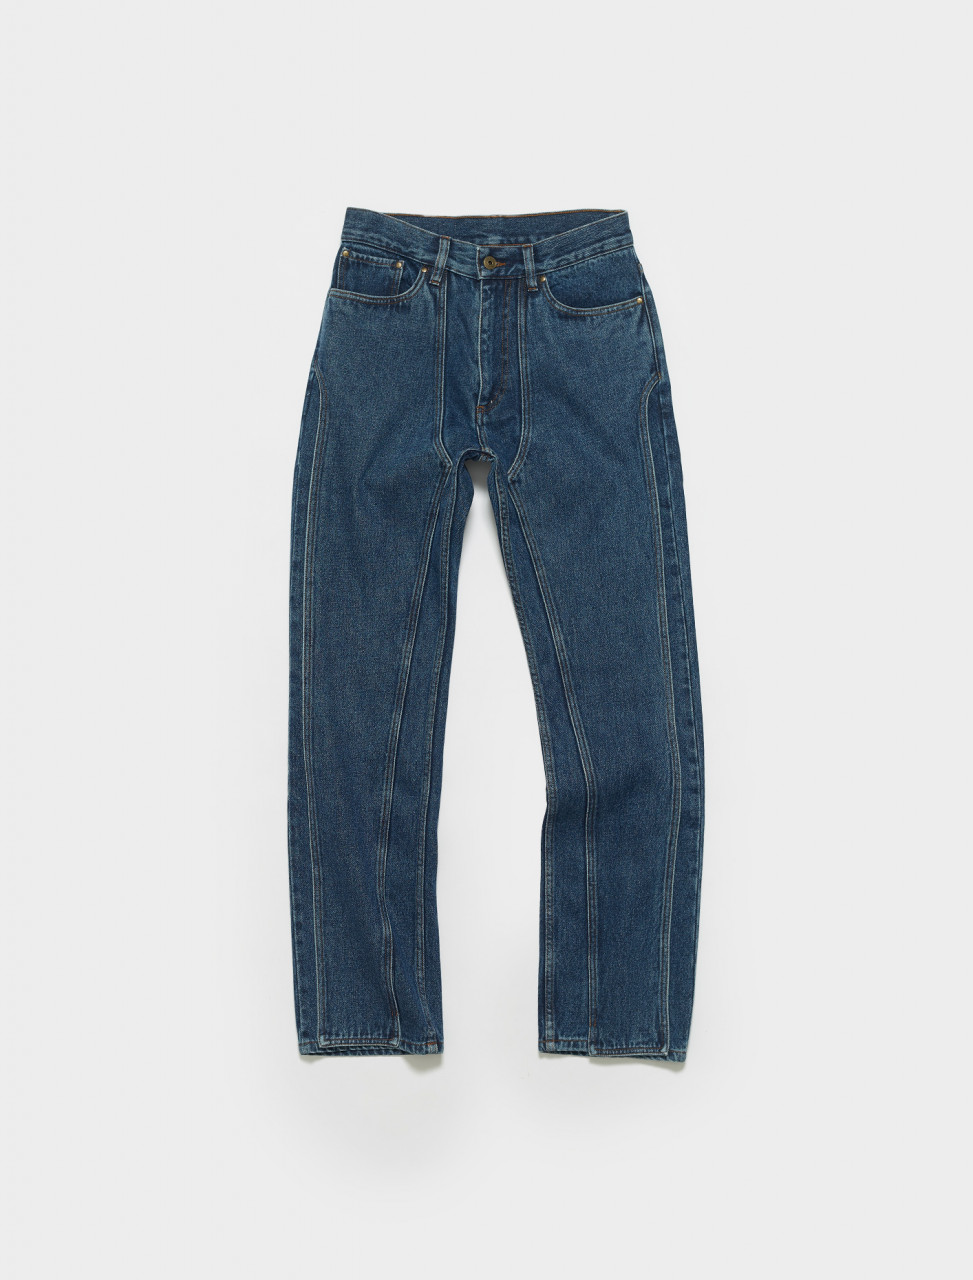 JEAN13-S20 Y PROJECT CLASSIC FRONT PANEL JEAN IN NAVY